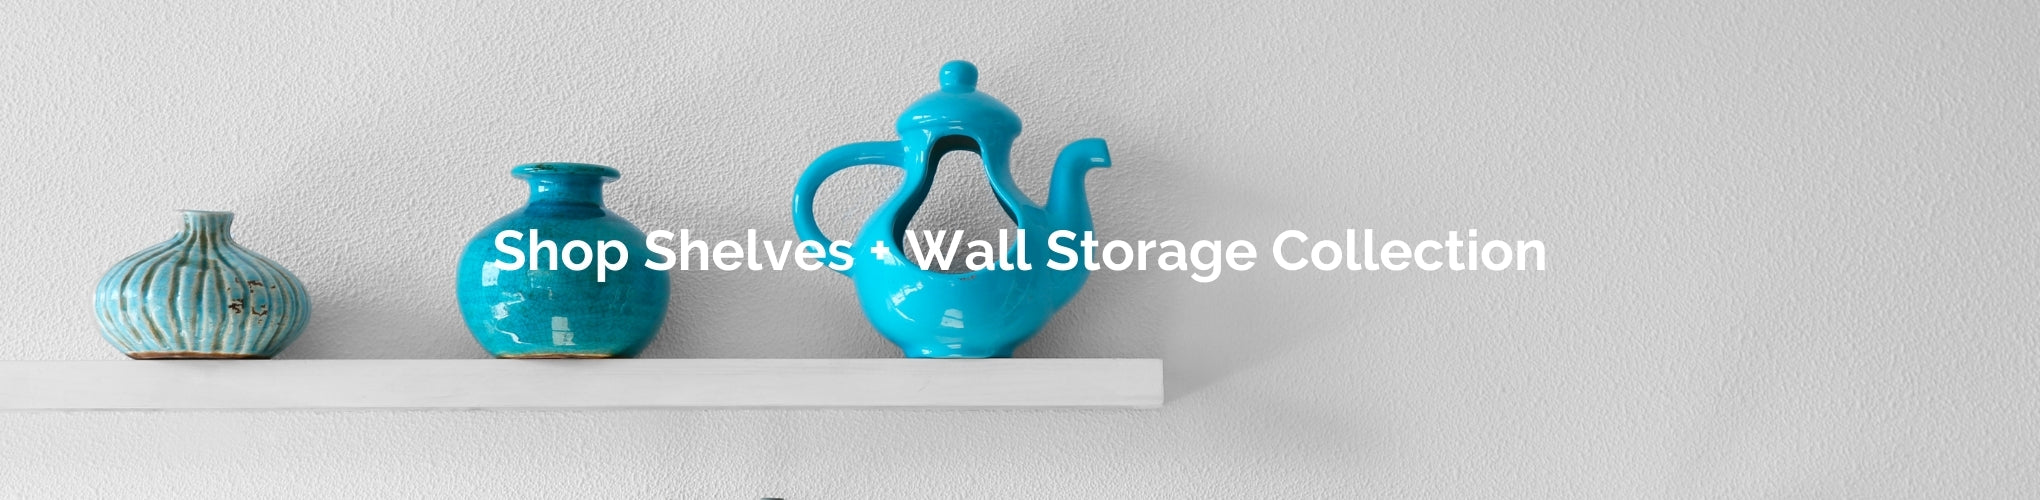 Shelves and Wall Storage Collection from Estilo Living - Buy Shelves and Wall Storage for small spaces and homes Online Now!